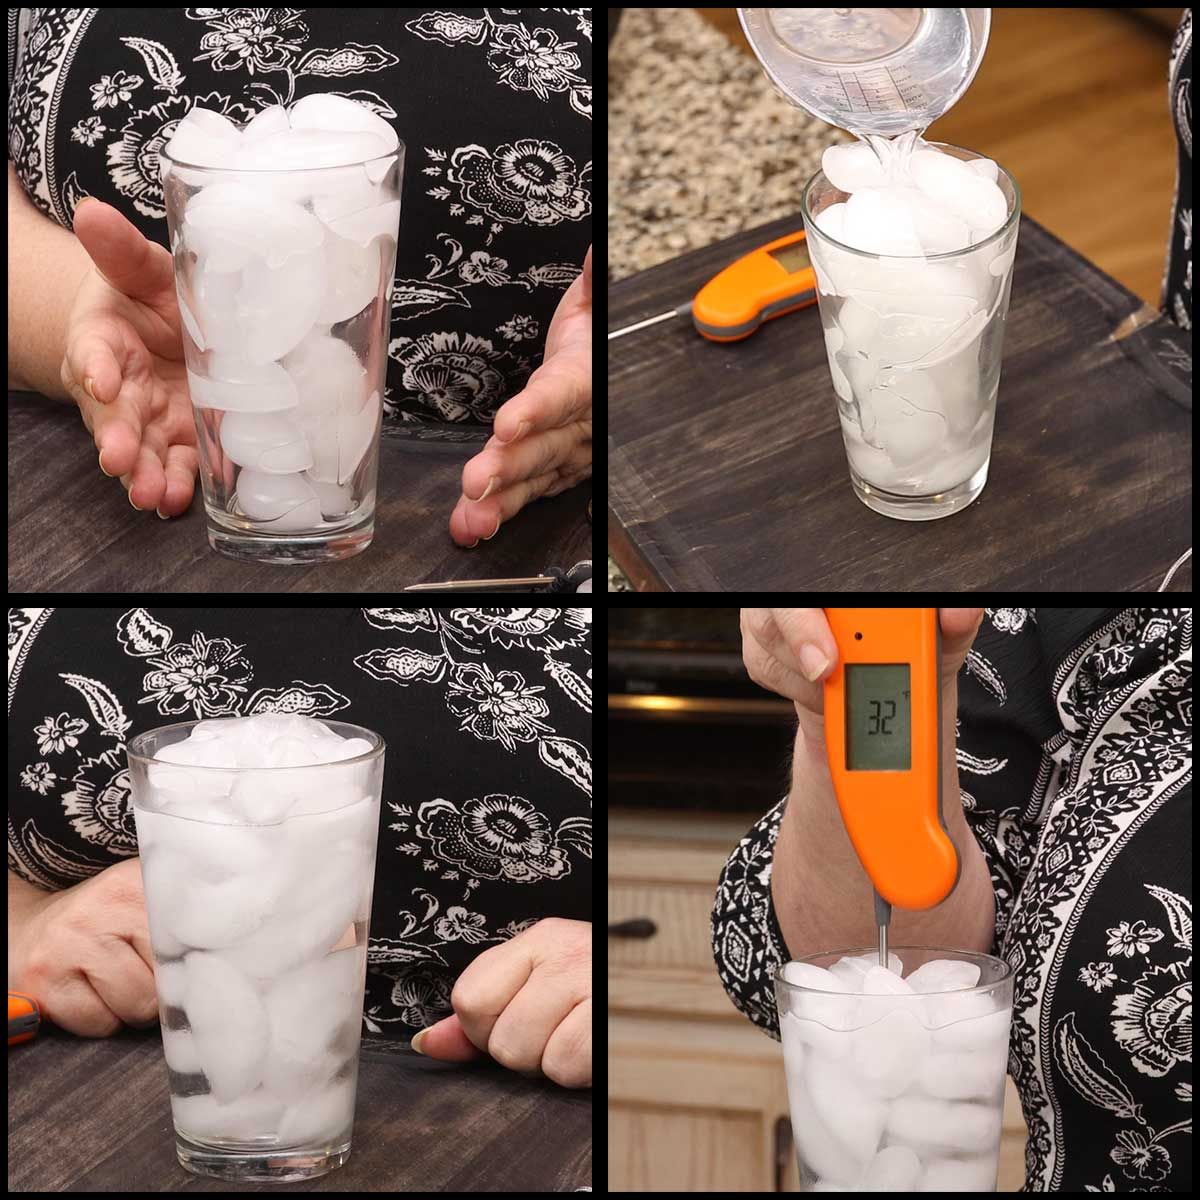 images showing the steps in testing a thermometer for accuracy using the ice bath method